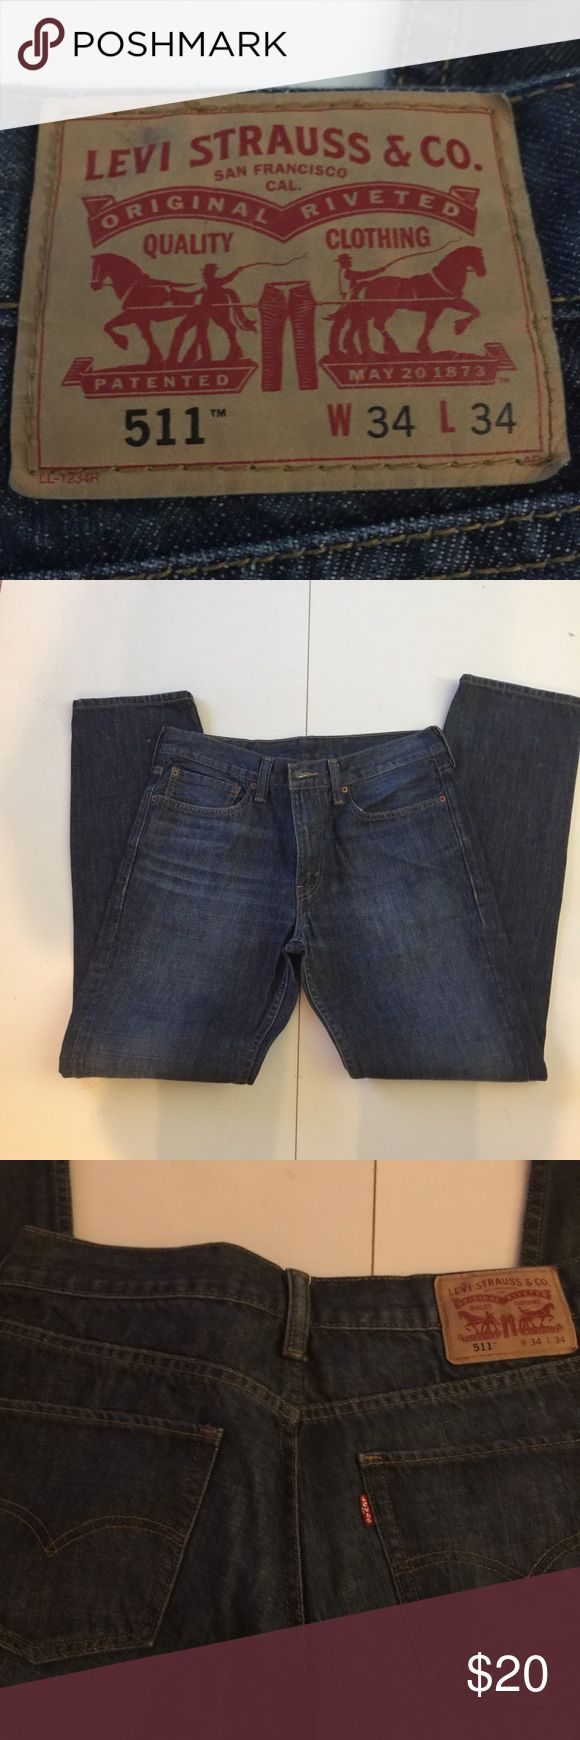 "Levi 511 jeans size 34 x 34"" This is a pair of barely worn Levi 511 jeans size 34 x 34"" there are no stains, rips, wear or broken zipper. Great condition. Levi 511 Pants"